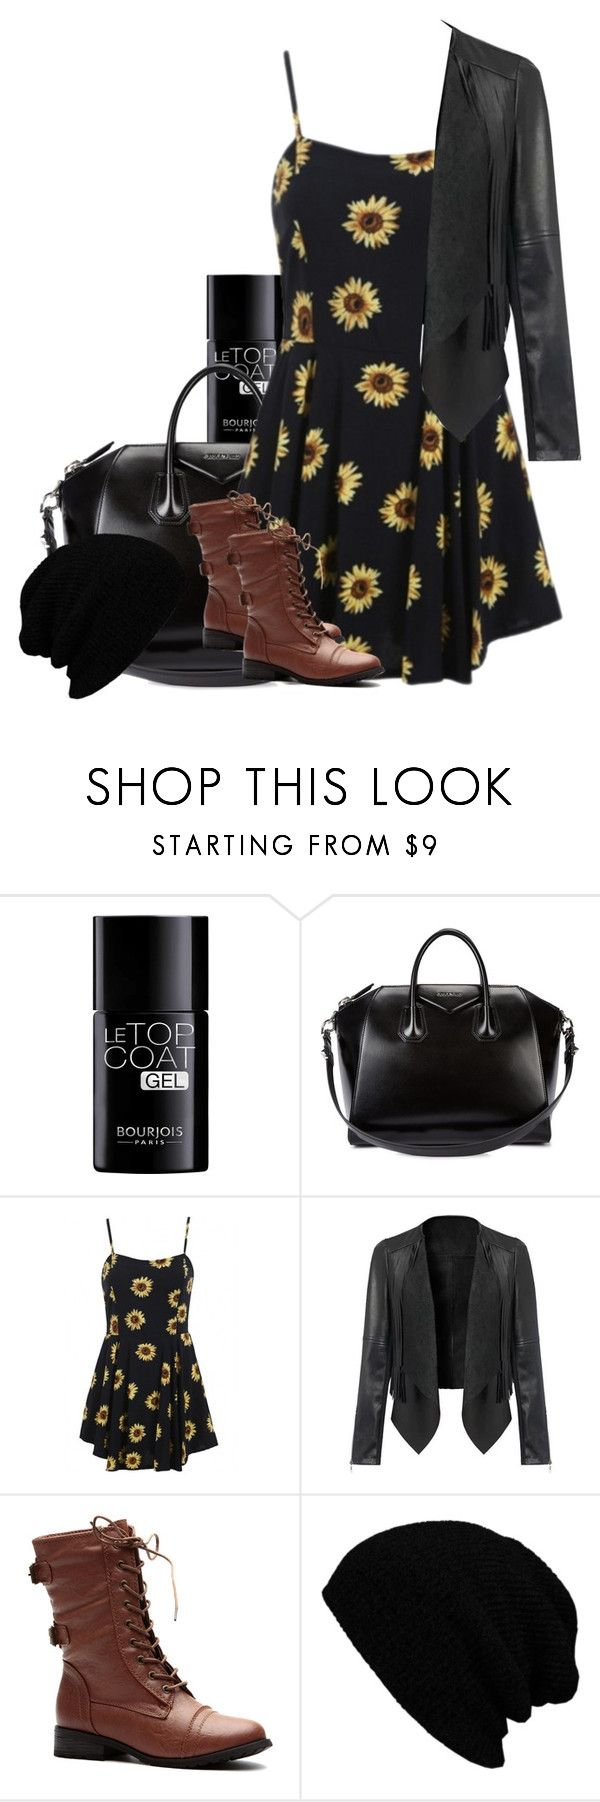 """Aria Montgomery inspired outfit"" by xzozebo ❤ liked on Polyvore featuring Bourjois, Givenchy and KBETHOS"